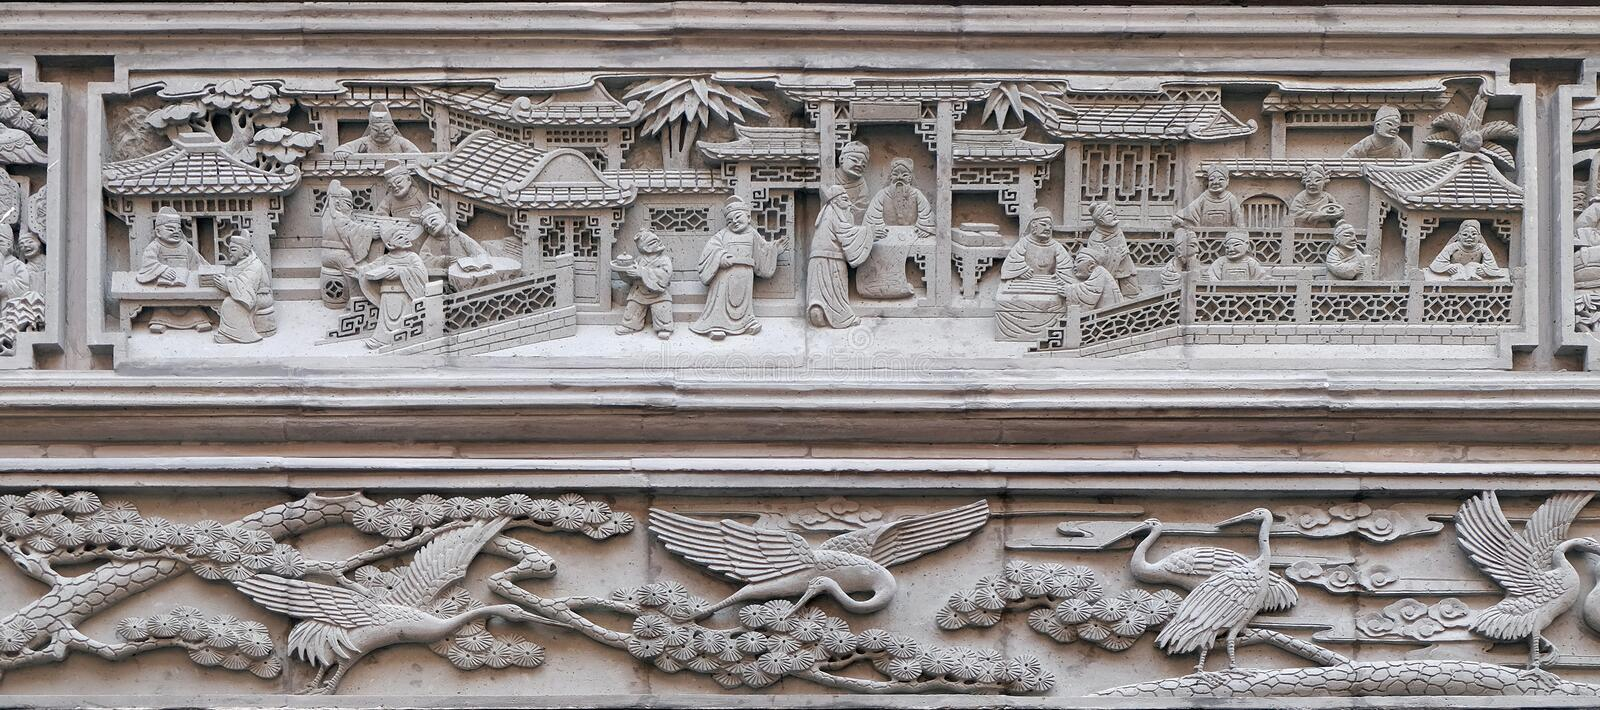 Bass-relief plaque on the doorway of the house in the Grand Canal, ancient town of Yuehe in Jiaxing, Zhejiang Province, China stock photo